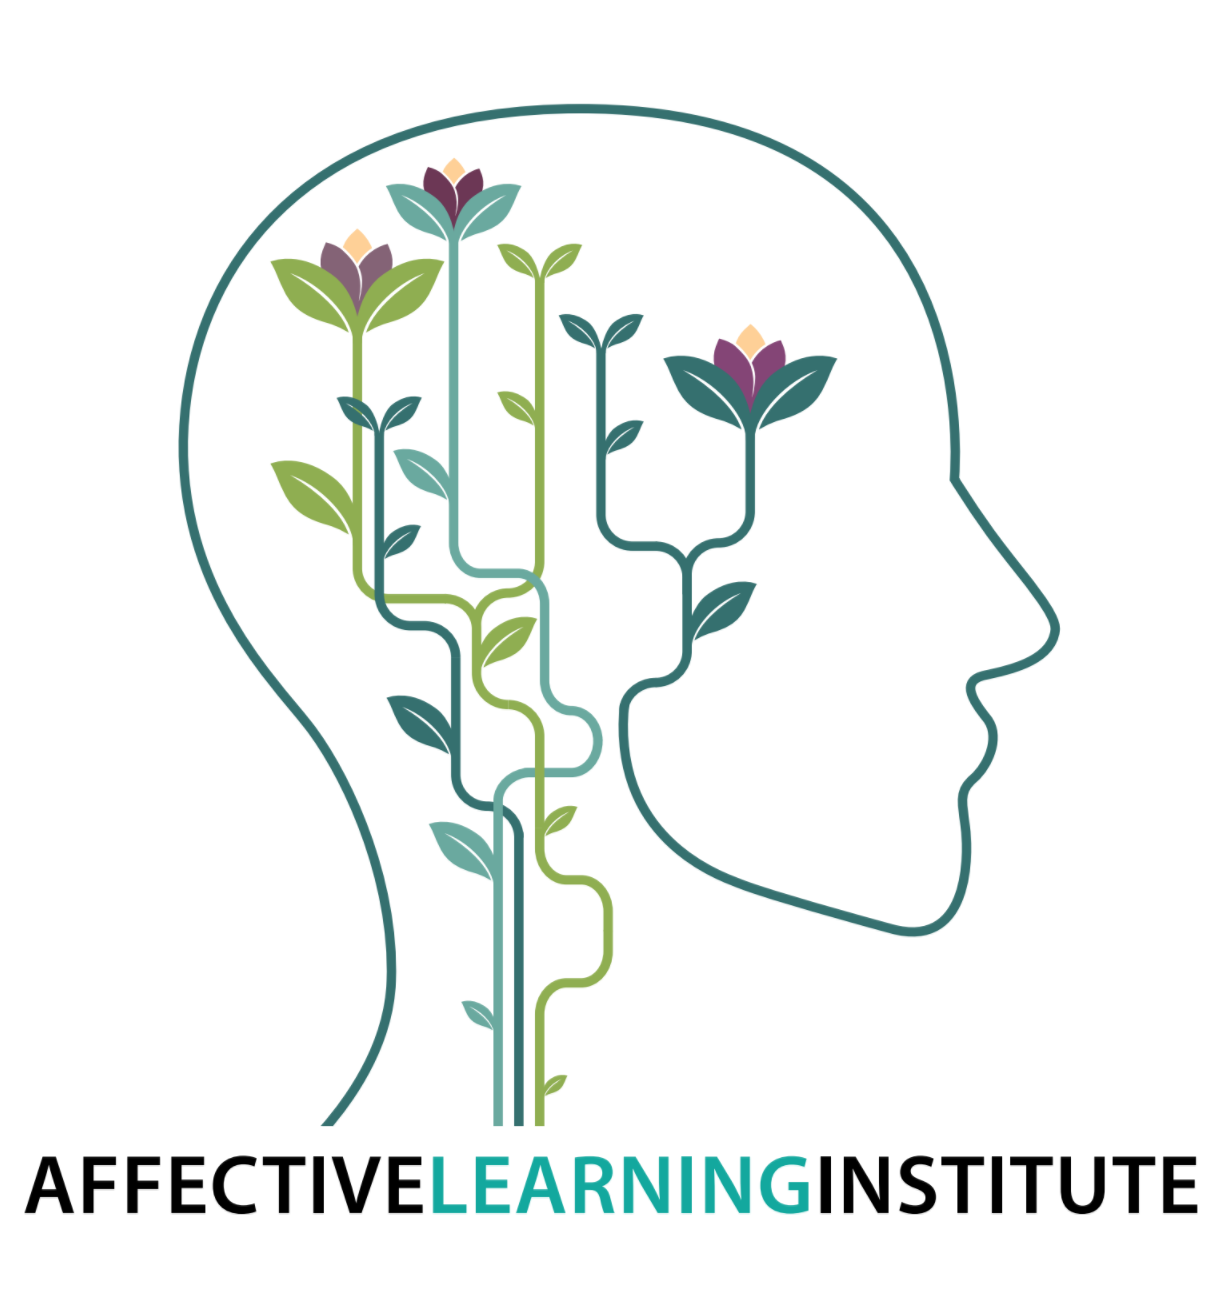 Affective Learning Institute logo